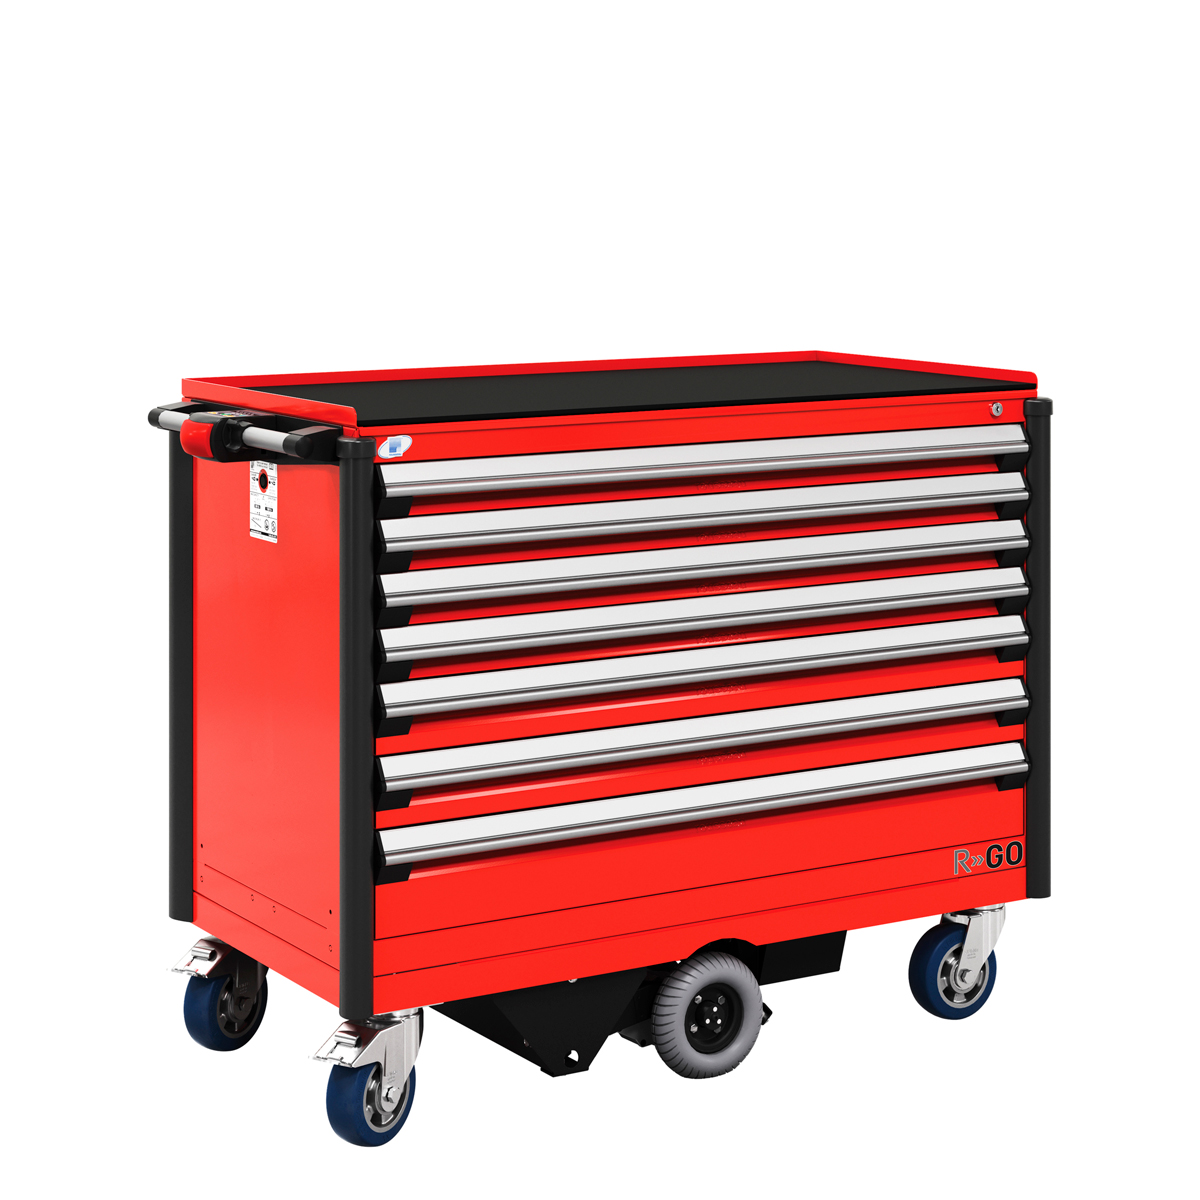 Rousseau_R-Go_Motorized-Toolbox